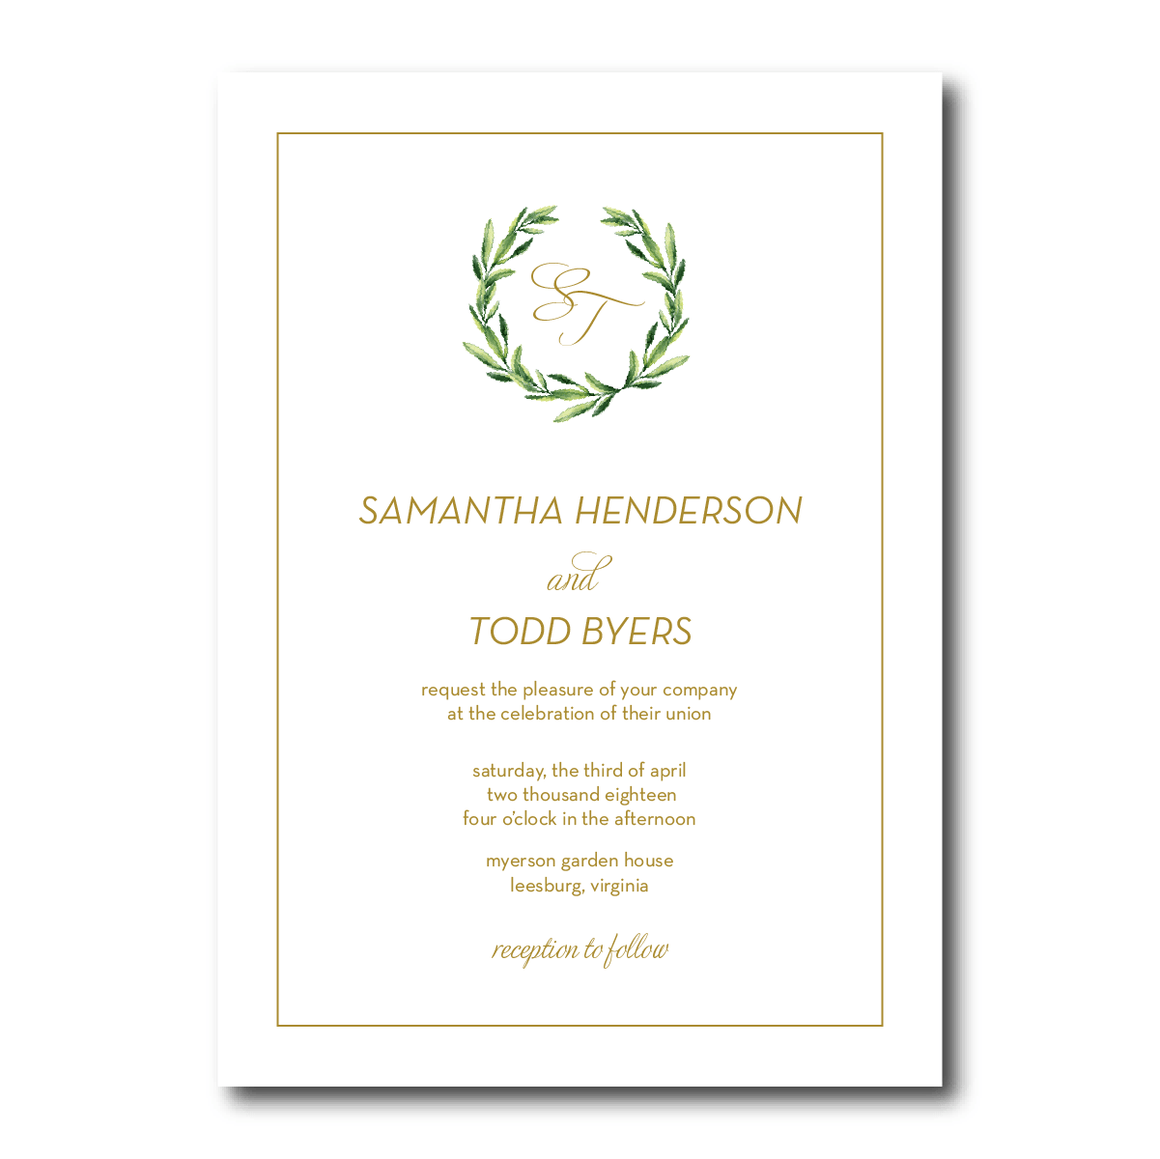 Wedding Invitation - Invitation | The Piper Wedding Collection